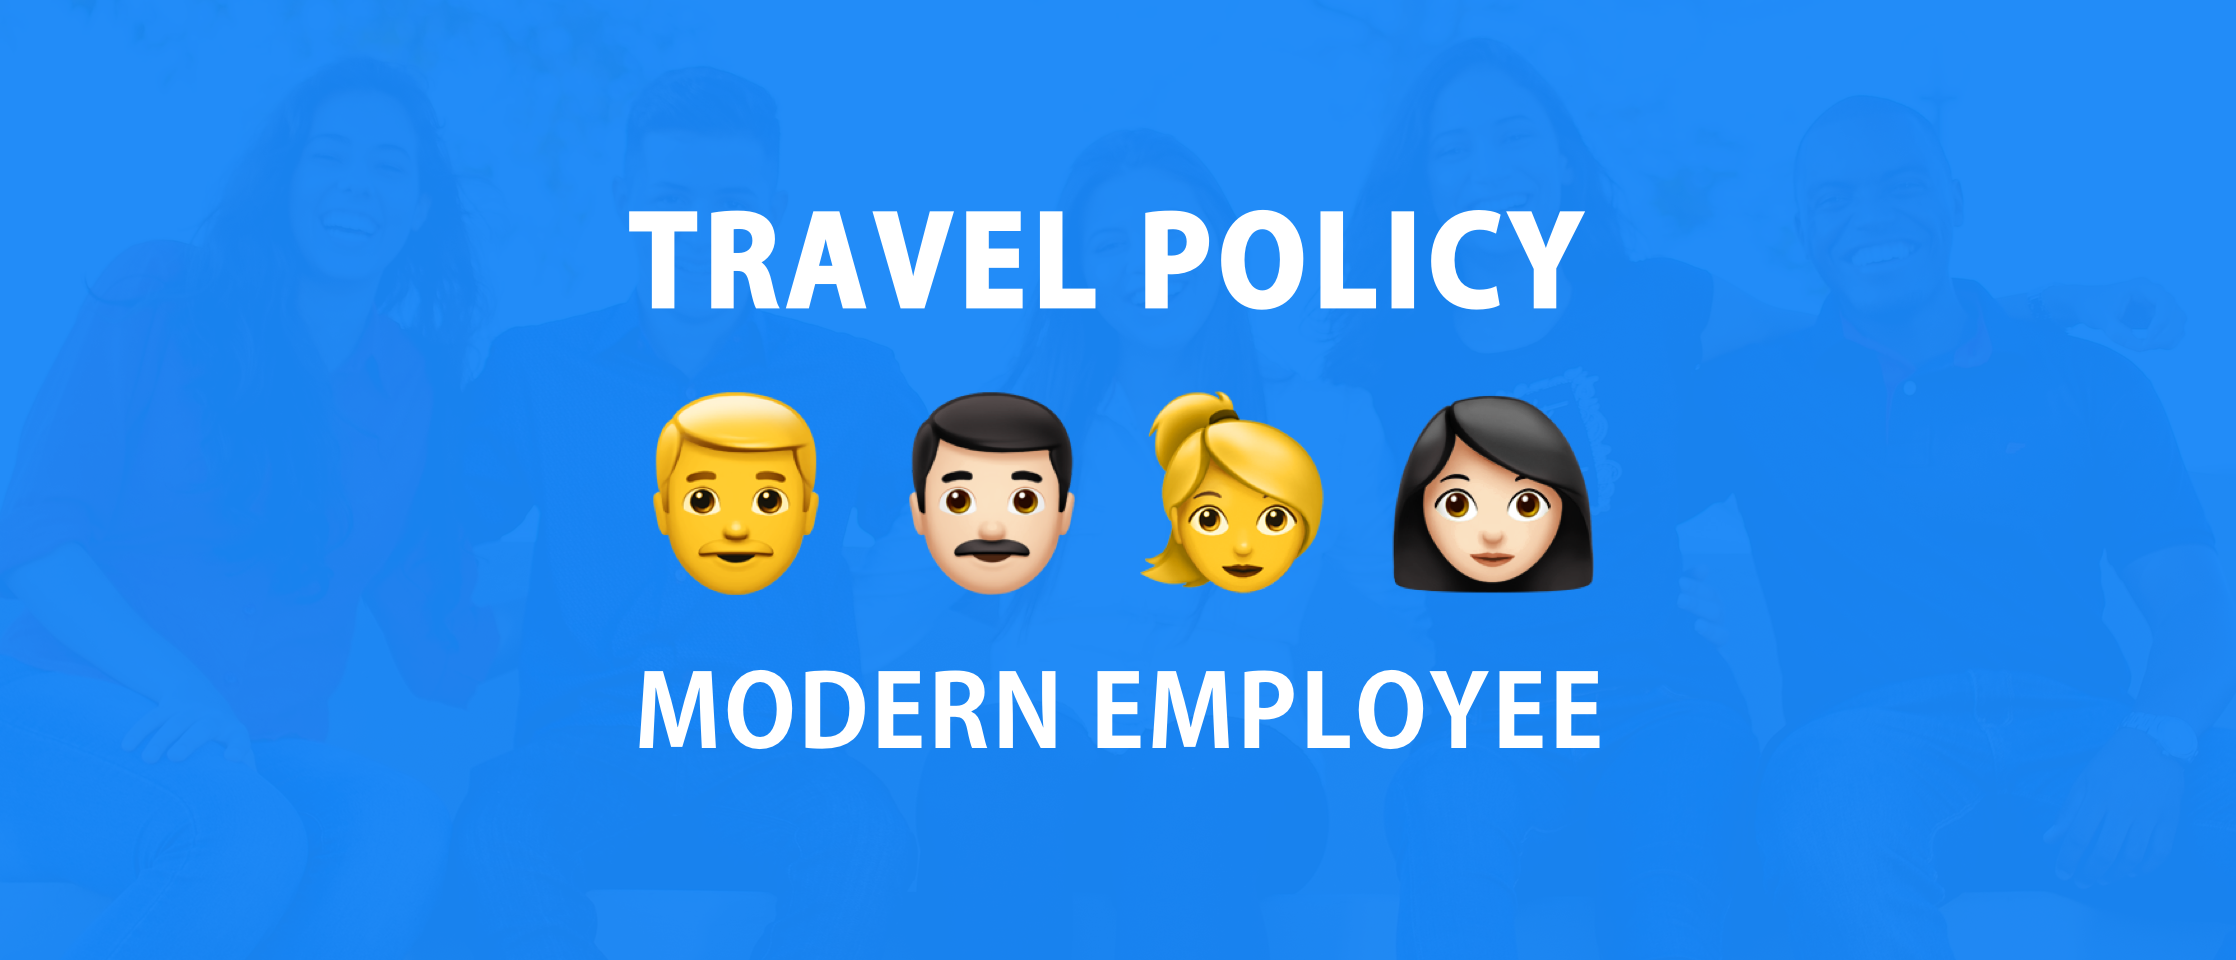 How to write a corporate travel policy for the modern employee